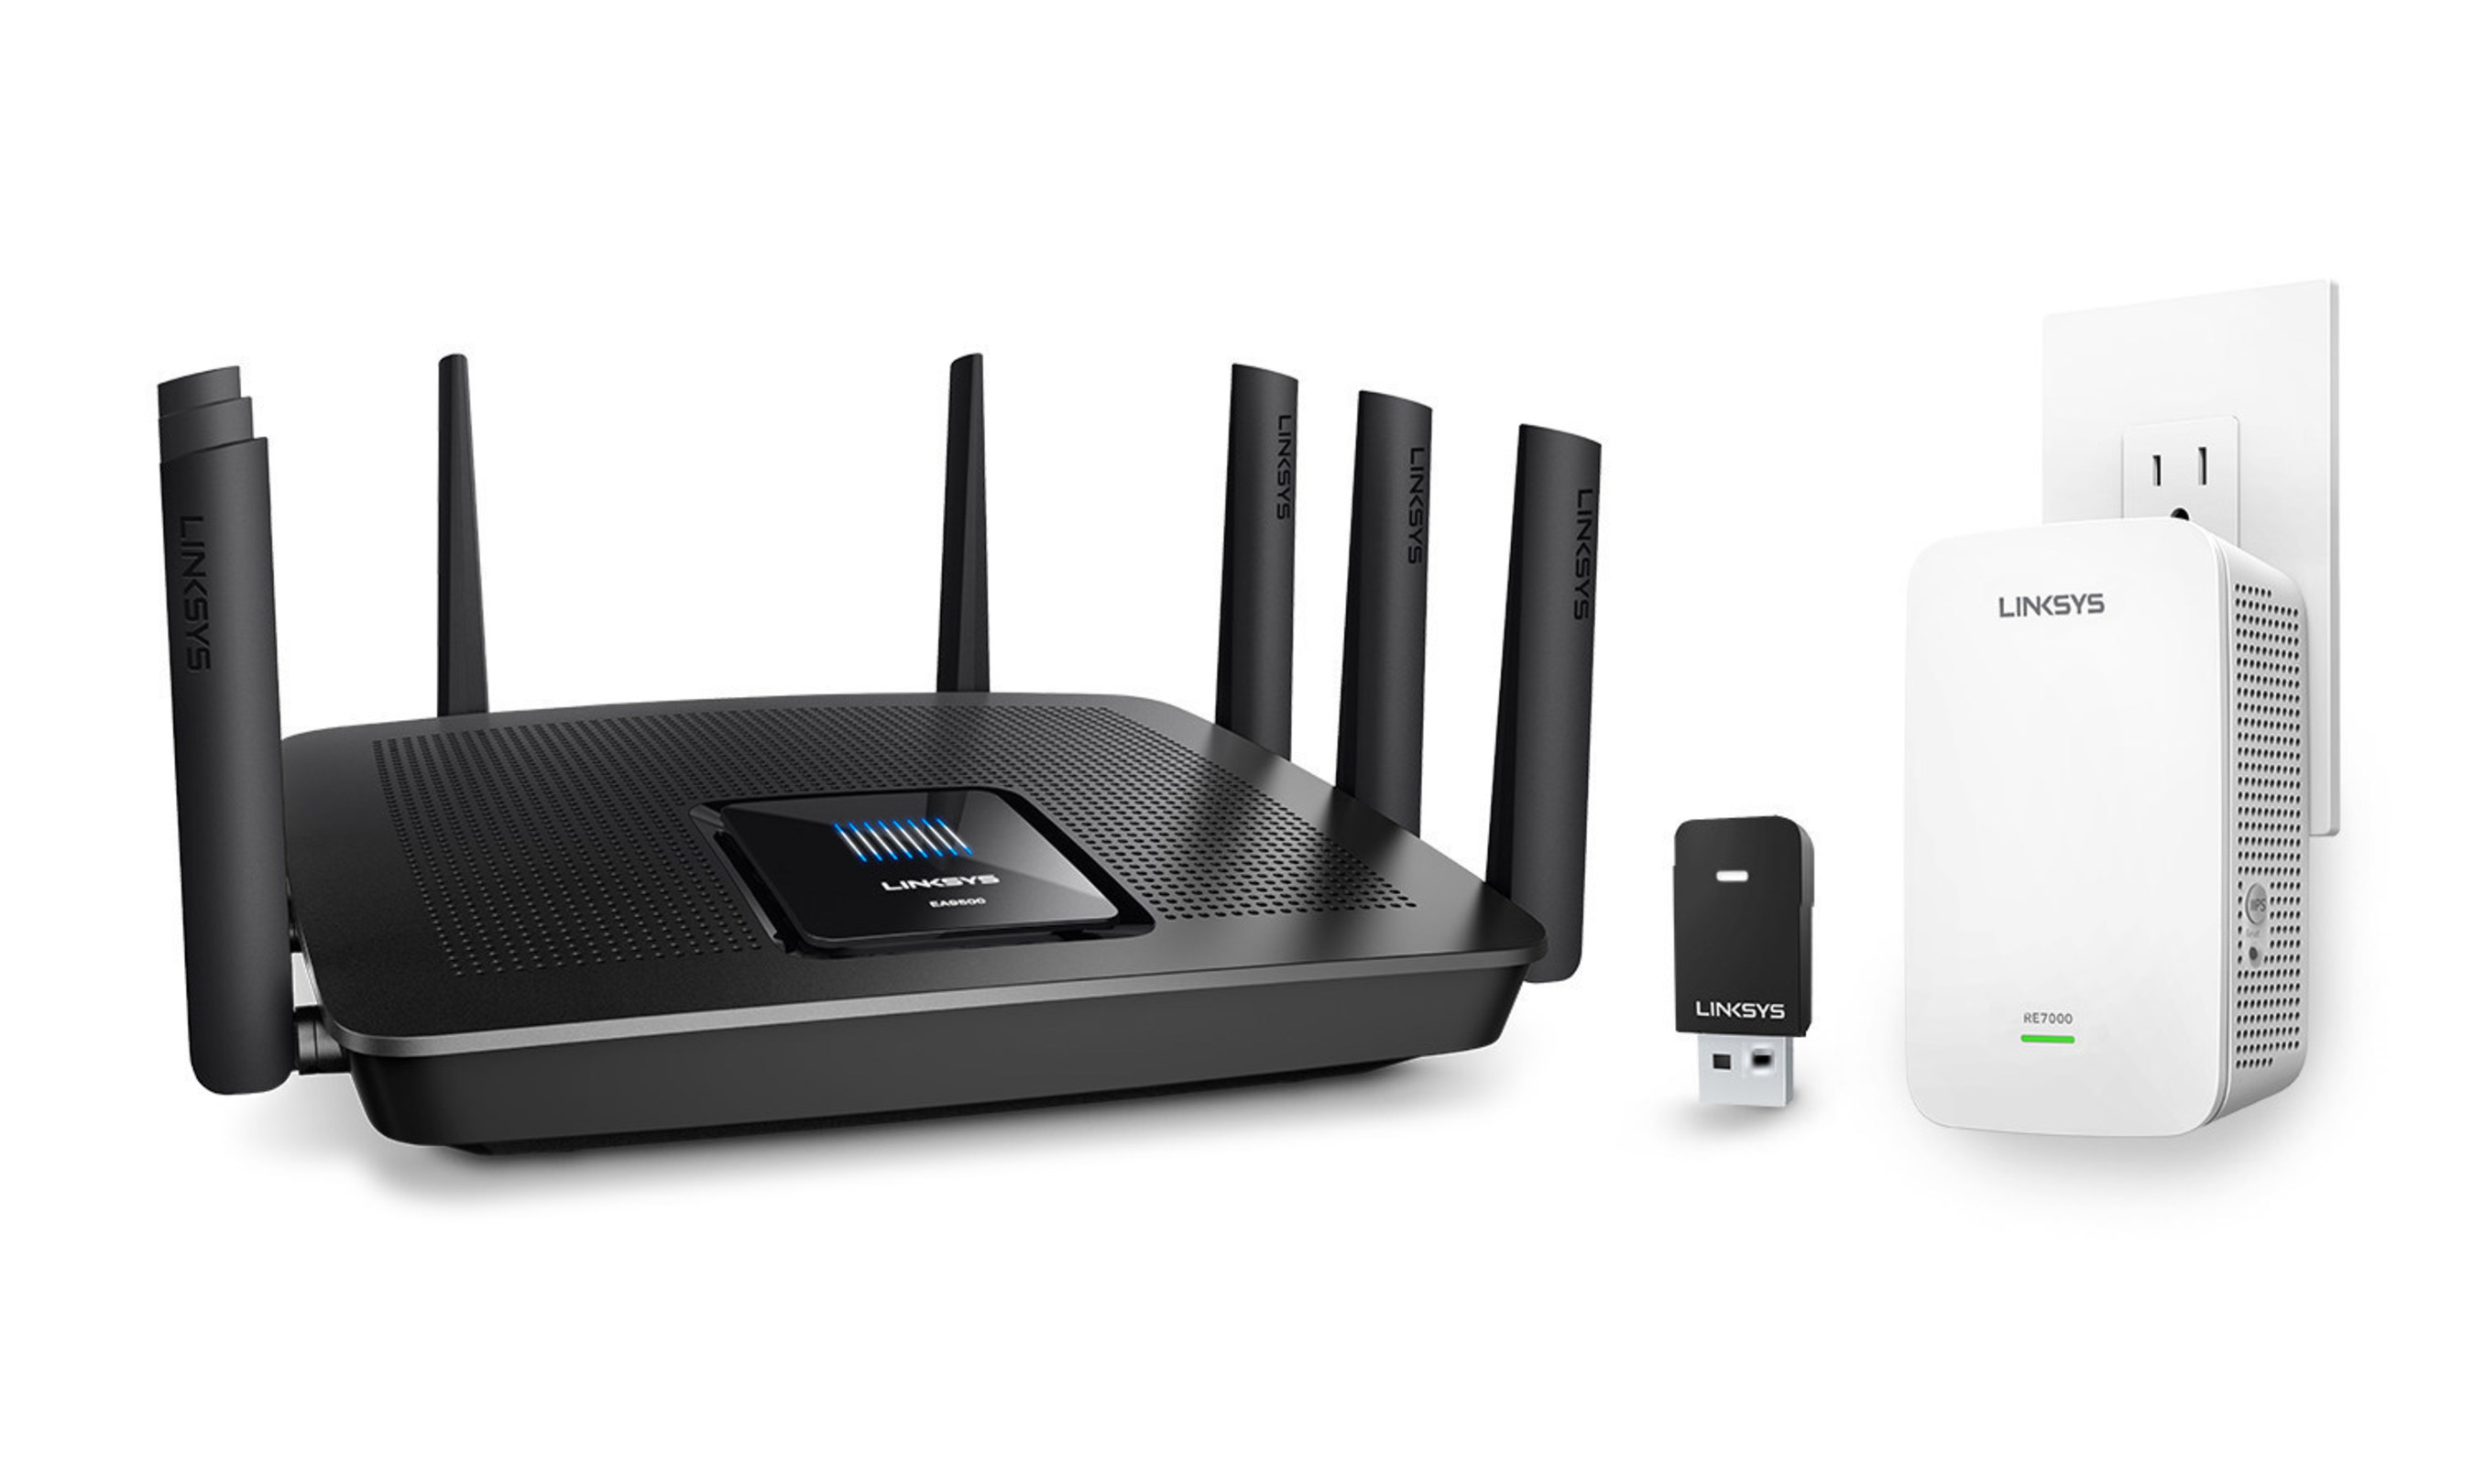 Linksys First To Ship The Most Powerful Home Wireless Solutions Leveraging Next Generation Wi-Fi, MU-MIMO And Seamless Roaming